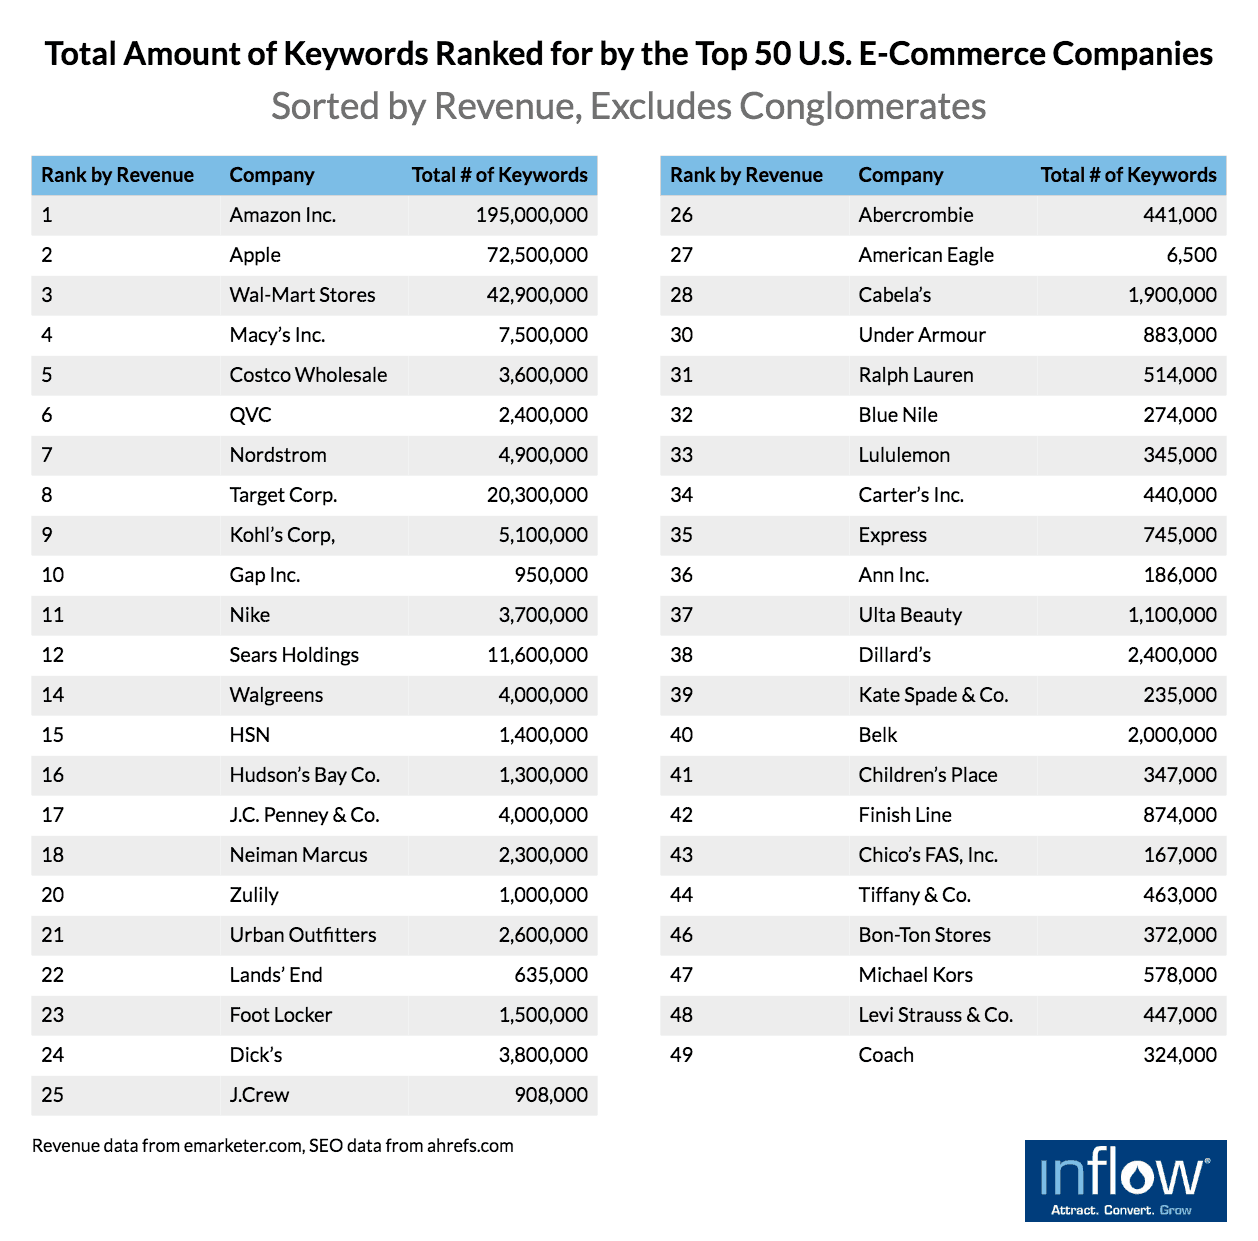 Total Amount of Keywords Ranked for by the Top 50 eCommerce Companies